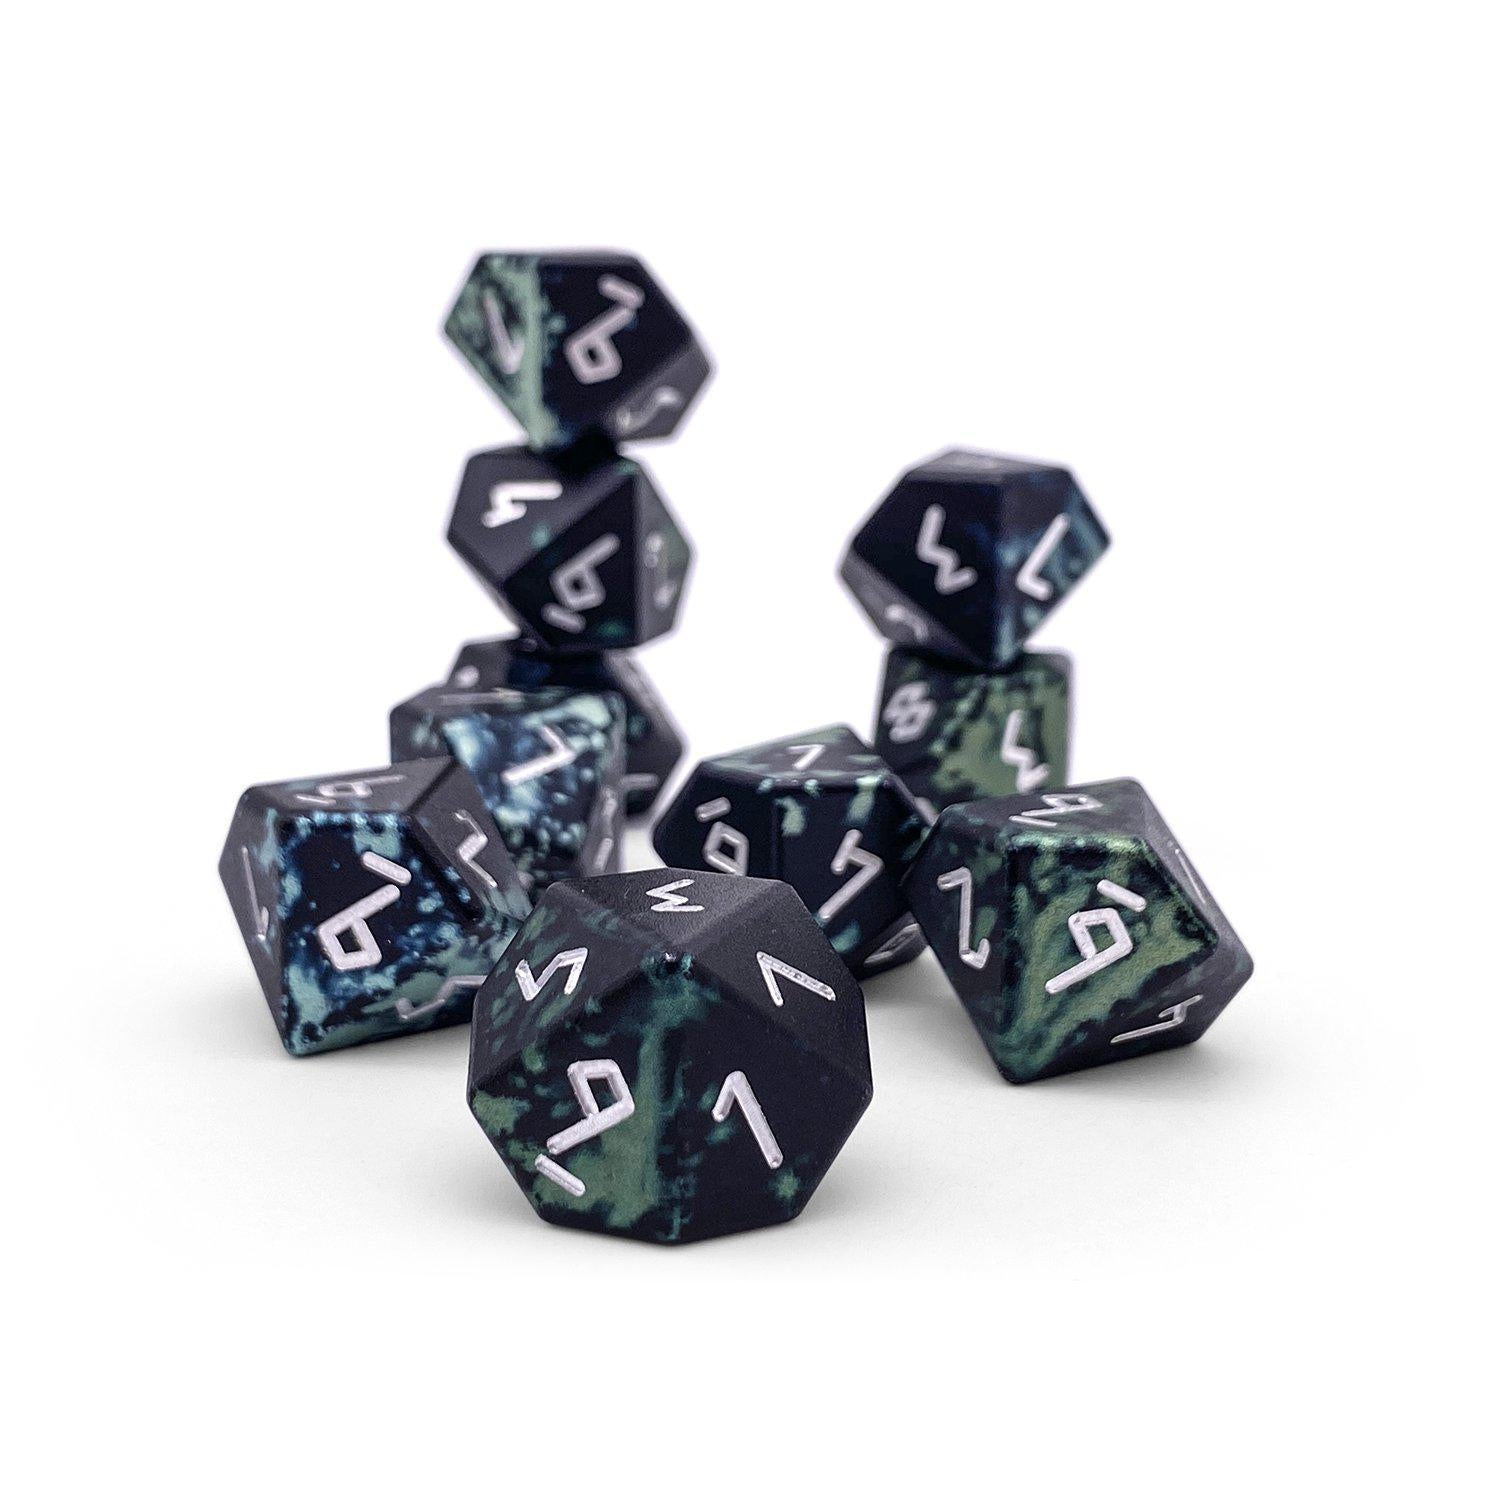 Trolls Blood - Set of 10 D10s - Wondrous Dice